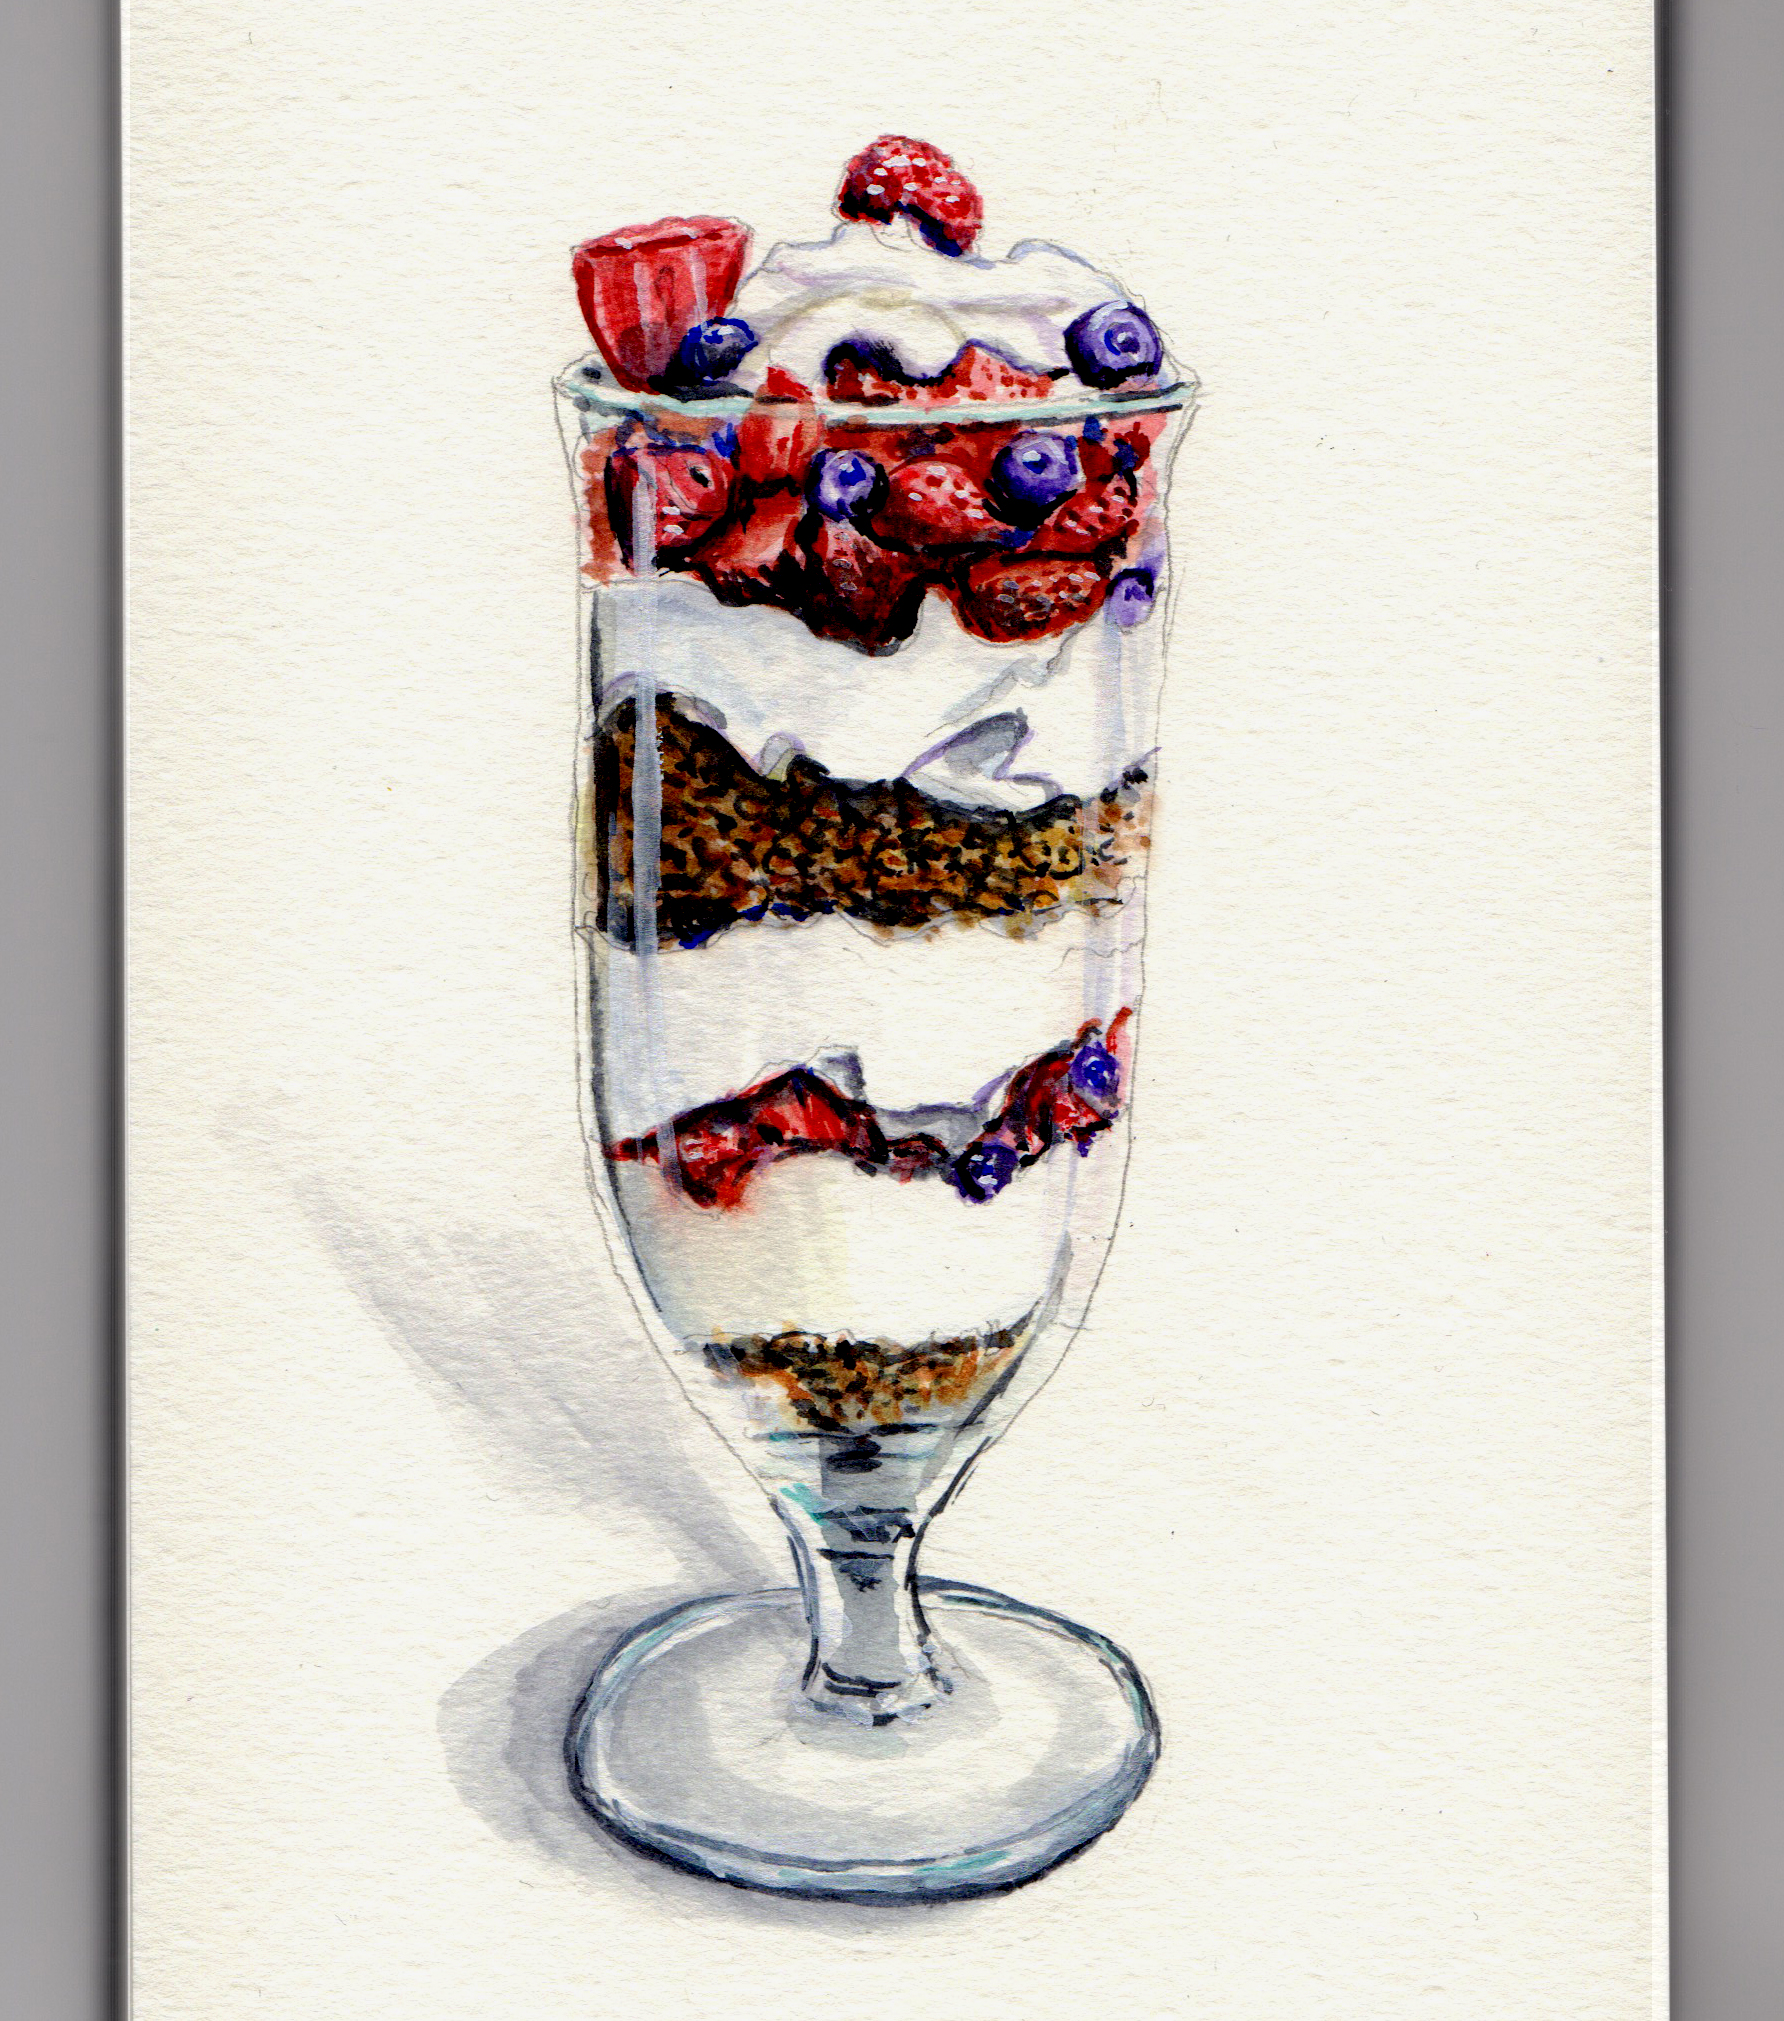 National Parfait Day